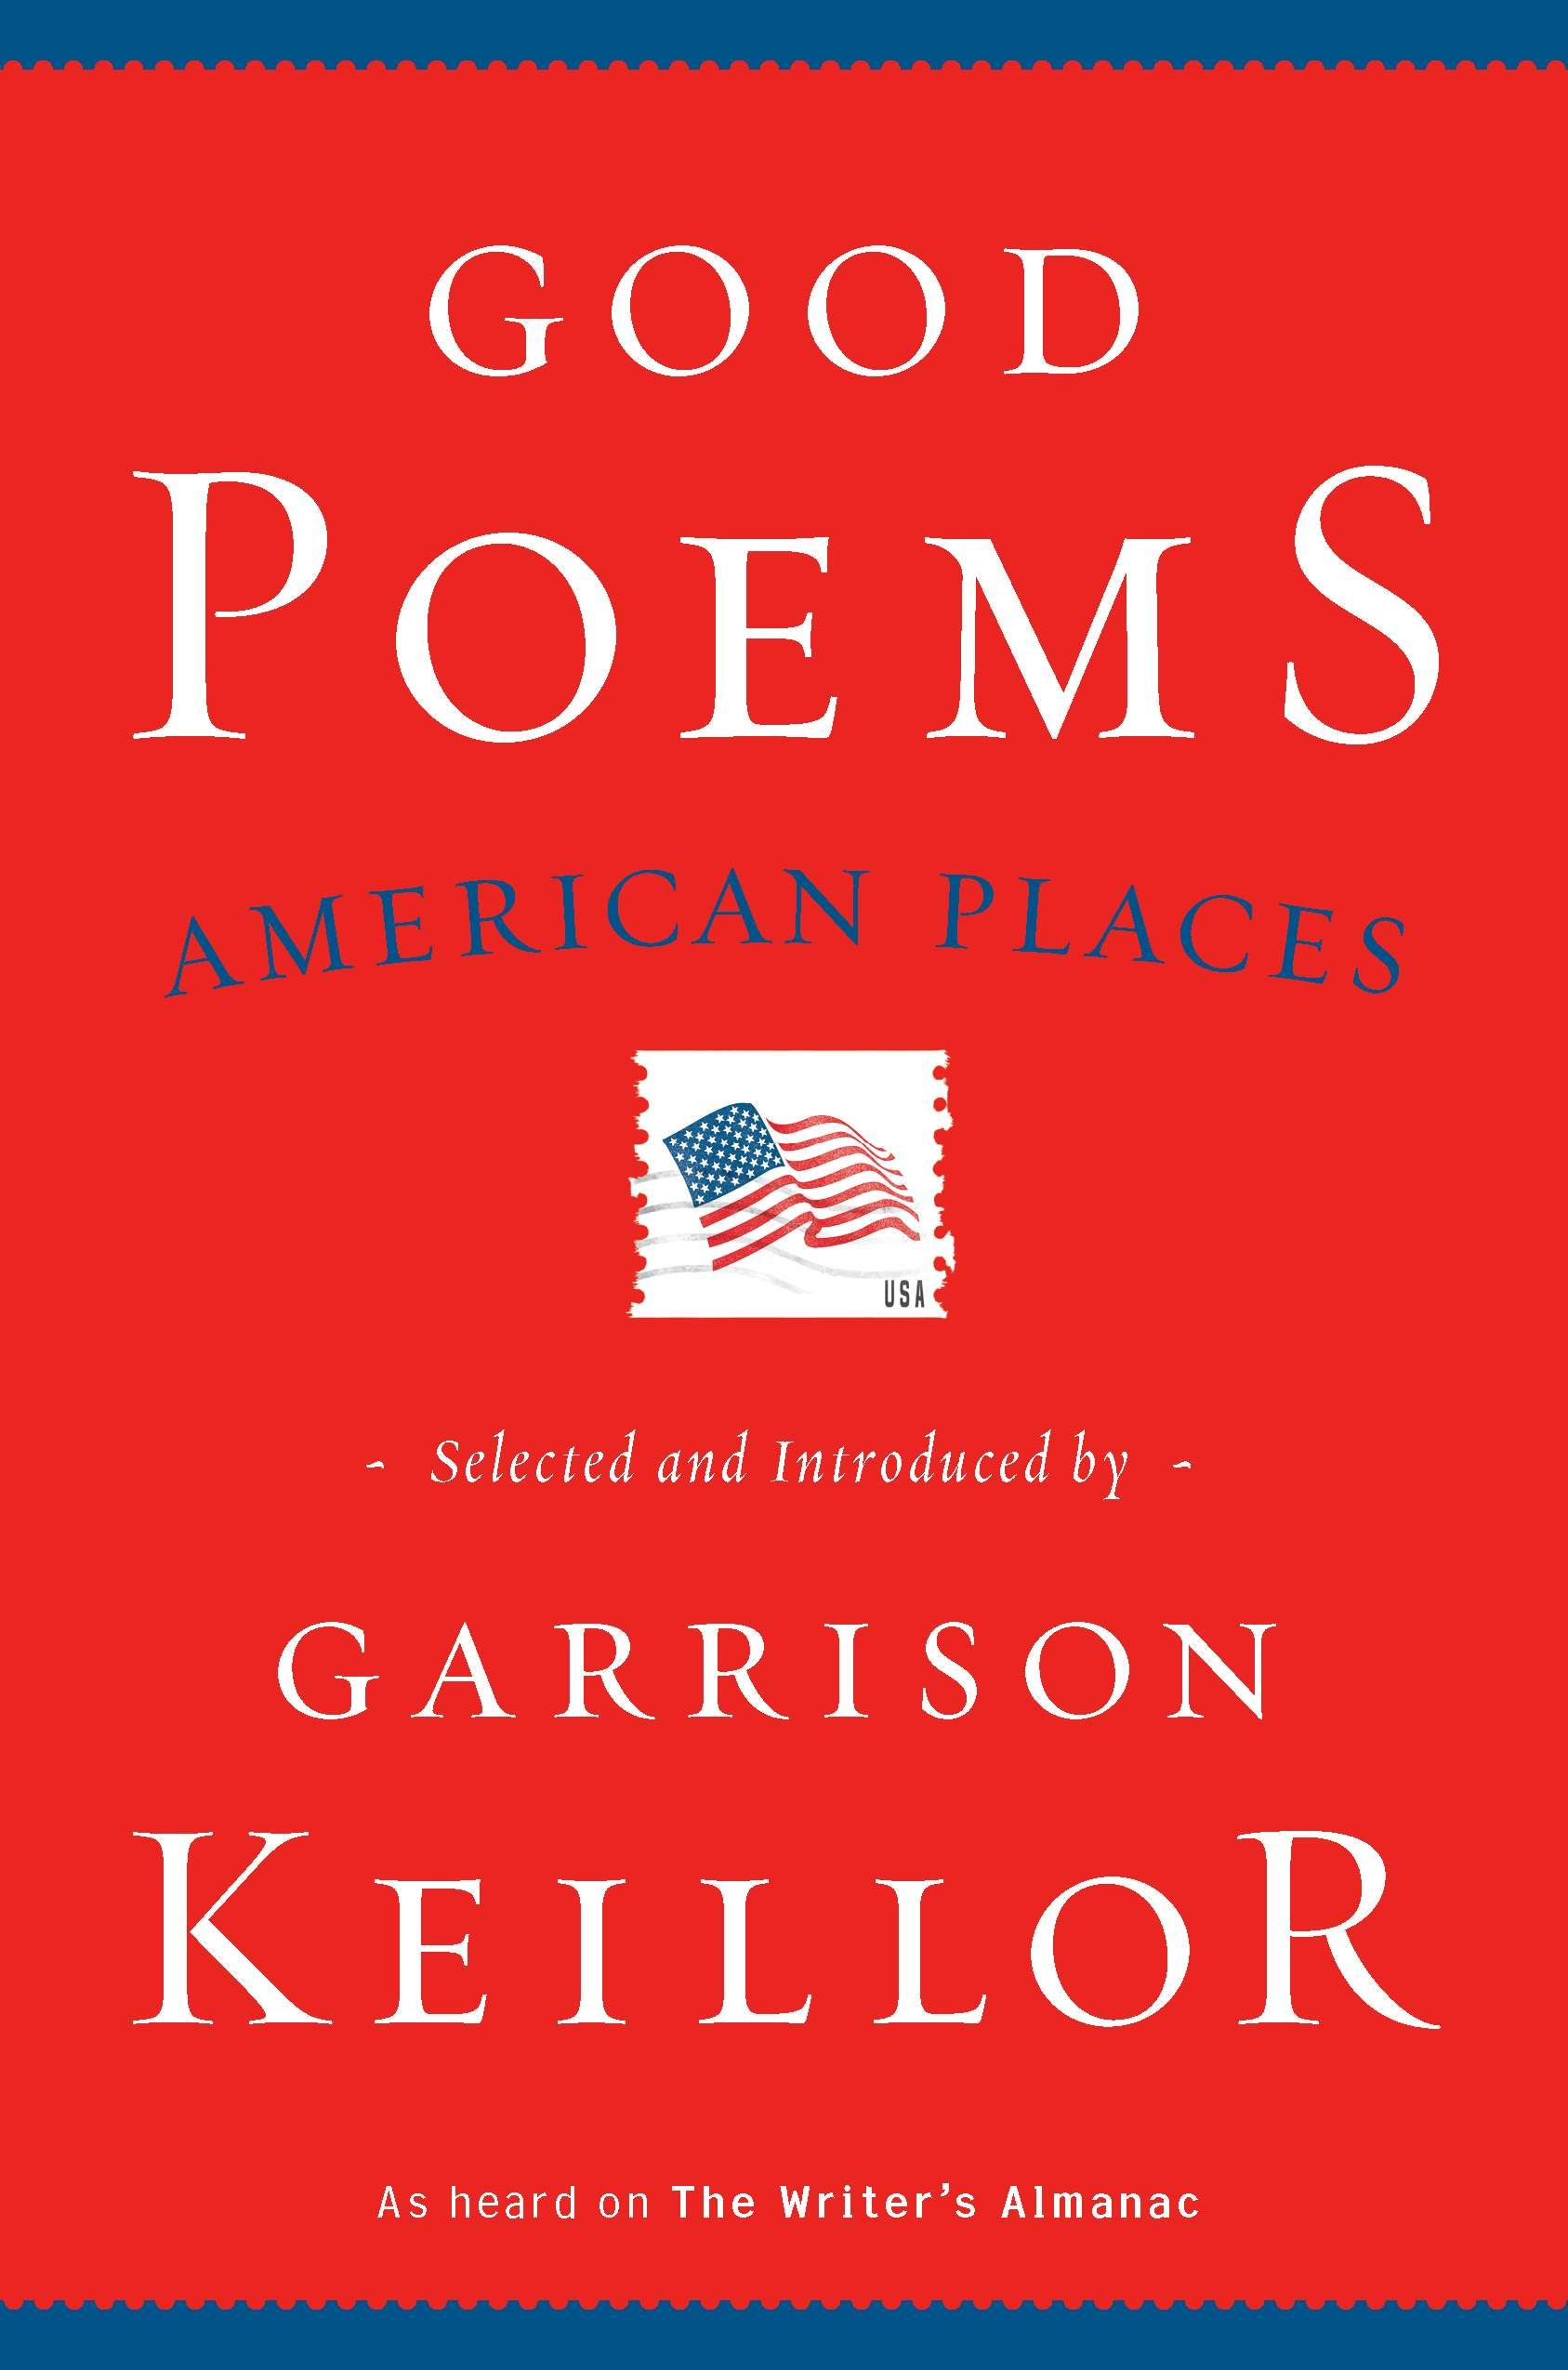 Good Poems, American Places selected and introduced by Garrison Keillor